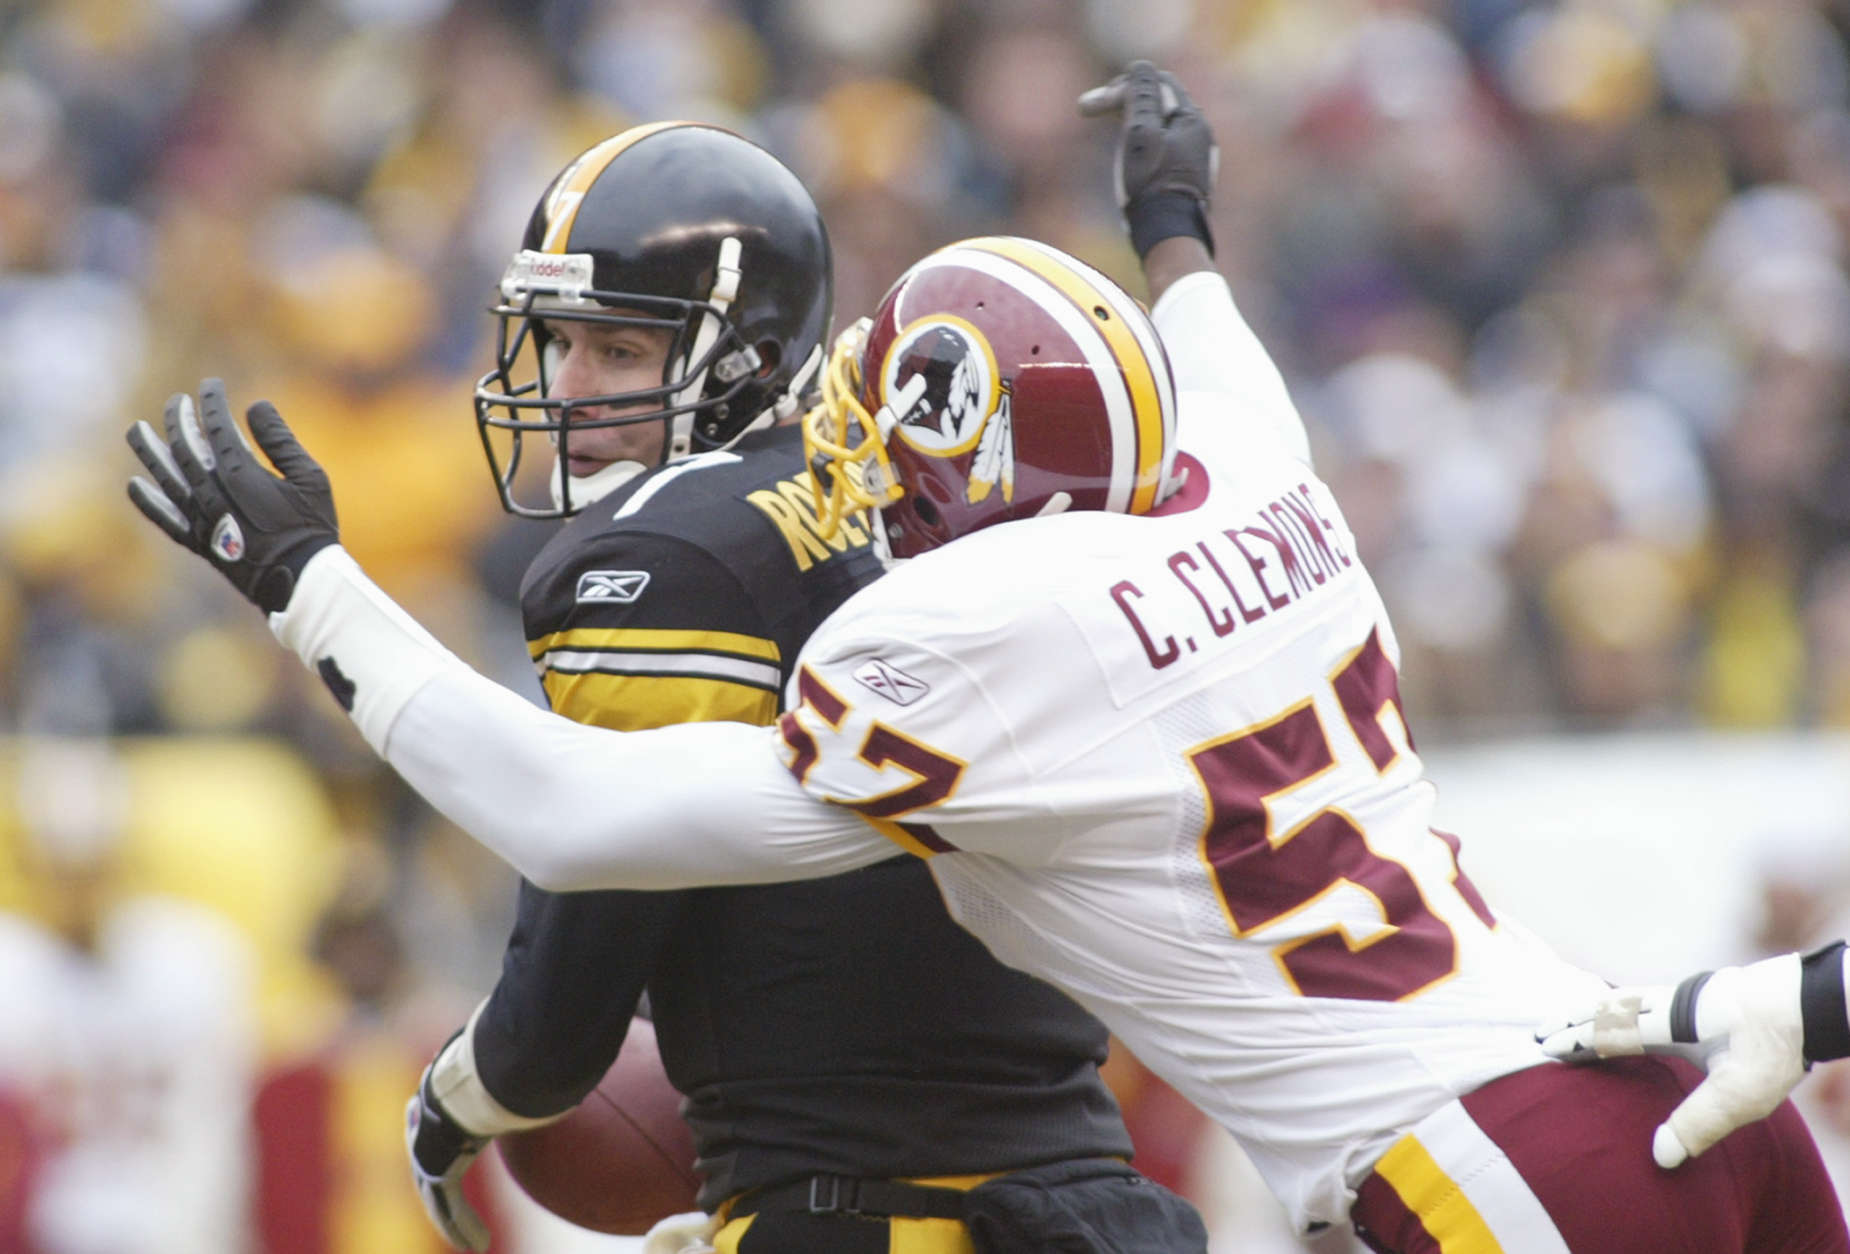 PITTSBURGH - NOVEMBER 28:  Quarterback Ben Roethlisberger #7 of the Pittsburgh Steelers is sacked by linebacker Chris Clemons #57 of the Washington Redskins during the game on November 28, 2004 at Heinz Field in Pittsburgh, Pennsylvania. The Steelers defeated the Redskins 16-7. (Photo by Rick Stewart/Getty Images)